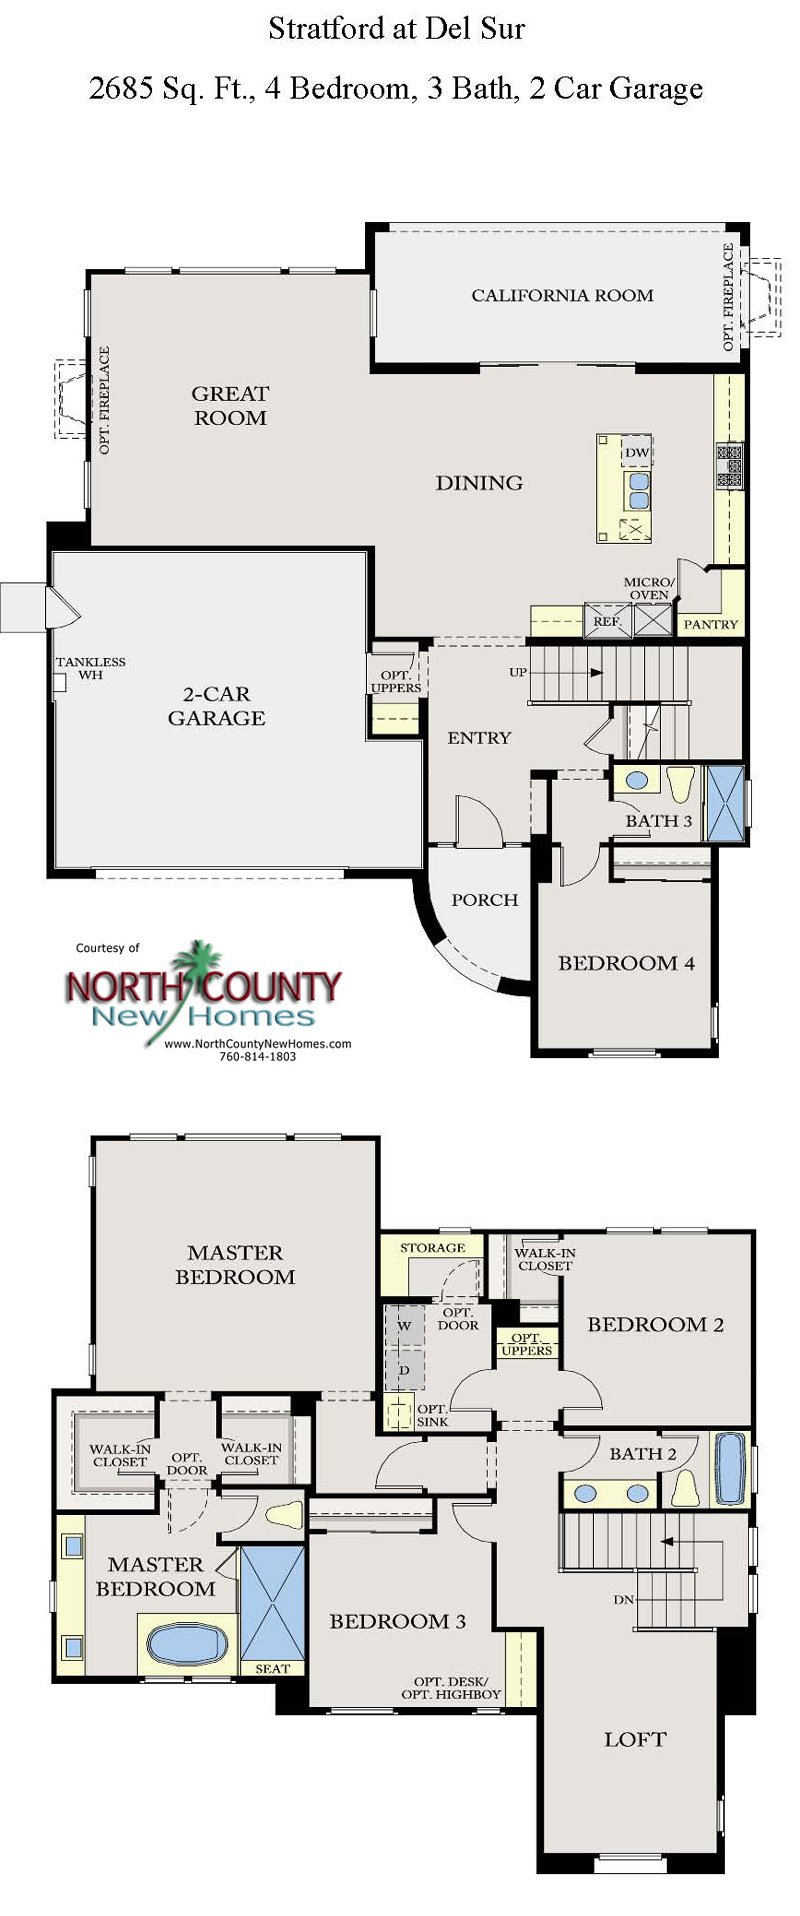 Stratford at del sur floor plans new homes in san diego north county new homes - New house plan photos ...